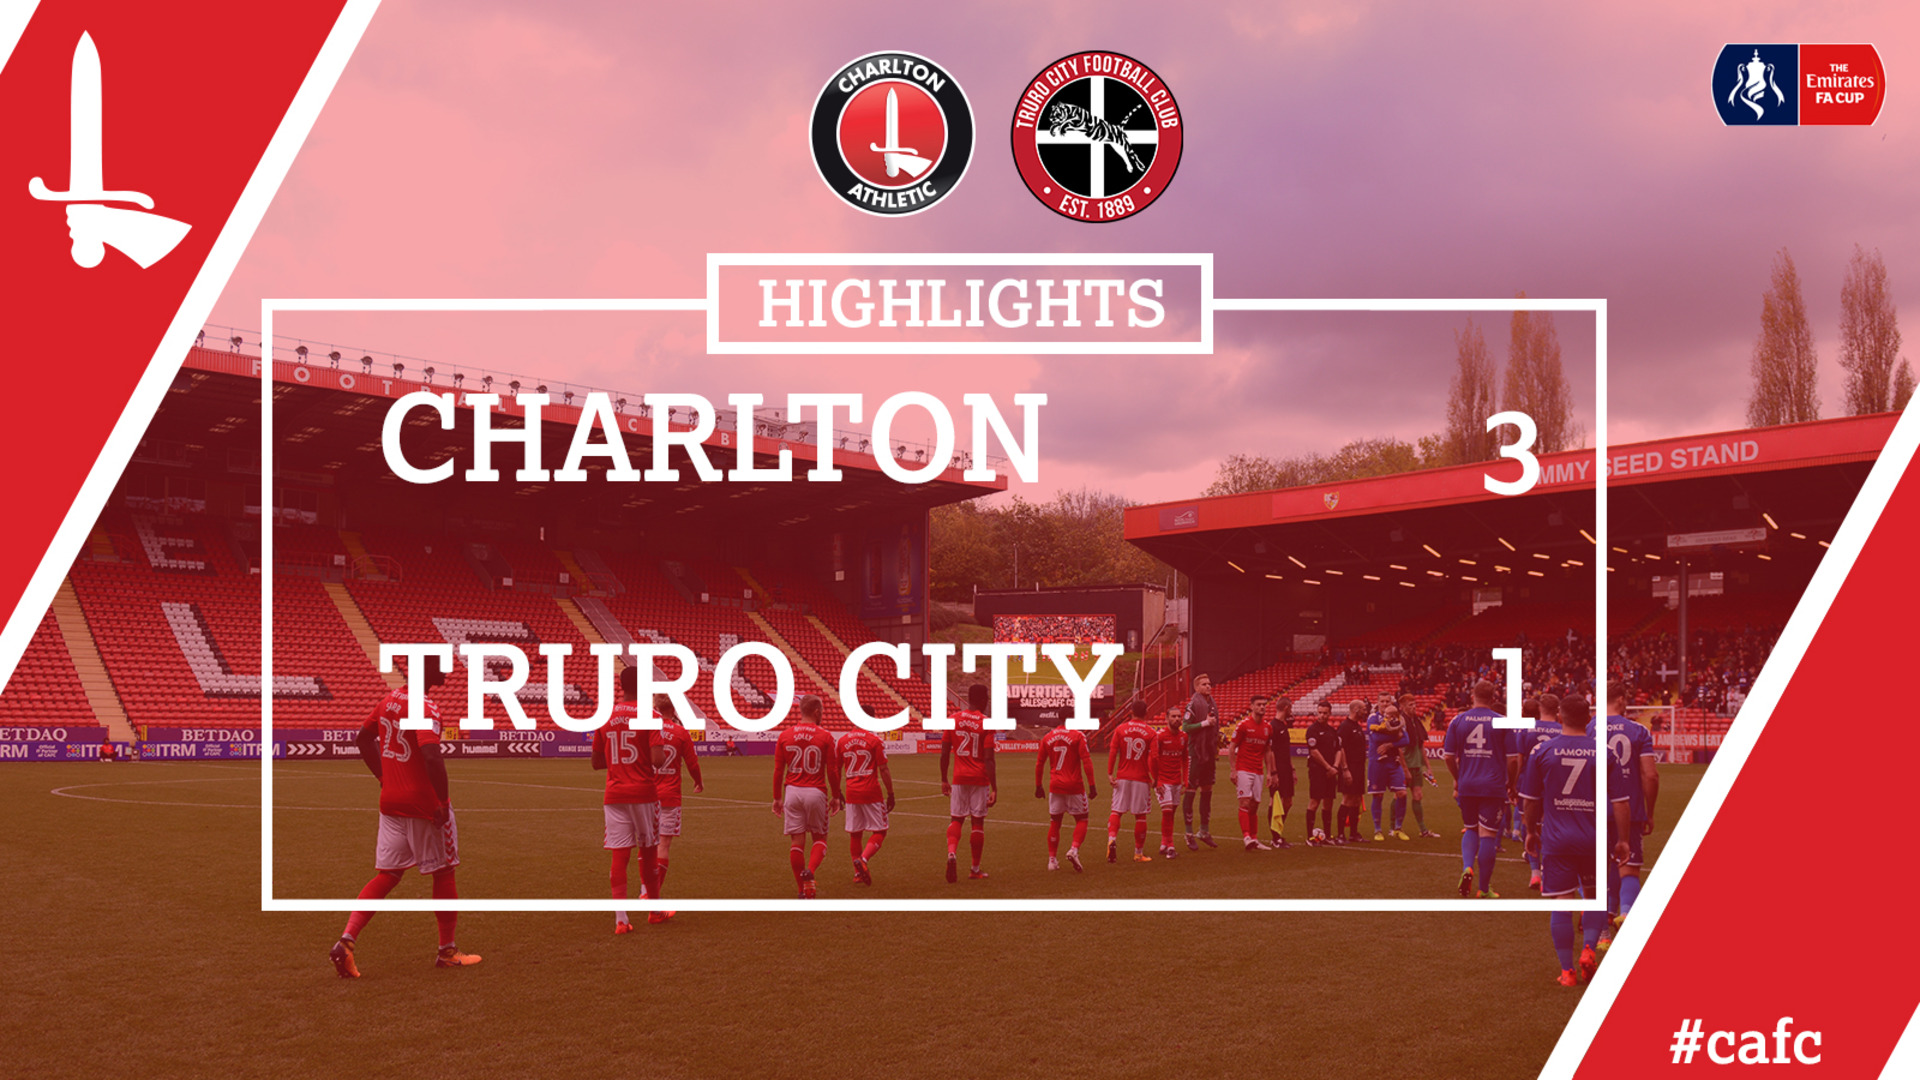 20 HIGHLIGHTS | Charlton 3 Truro City 1 (FA Cup Nov 2017)